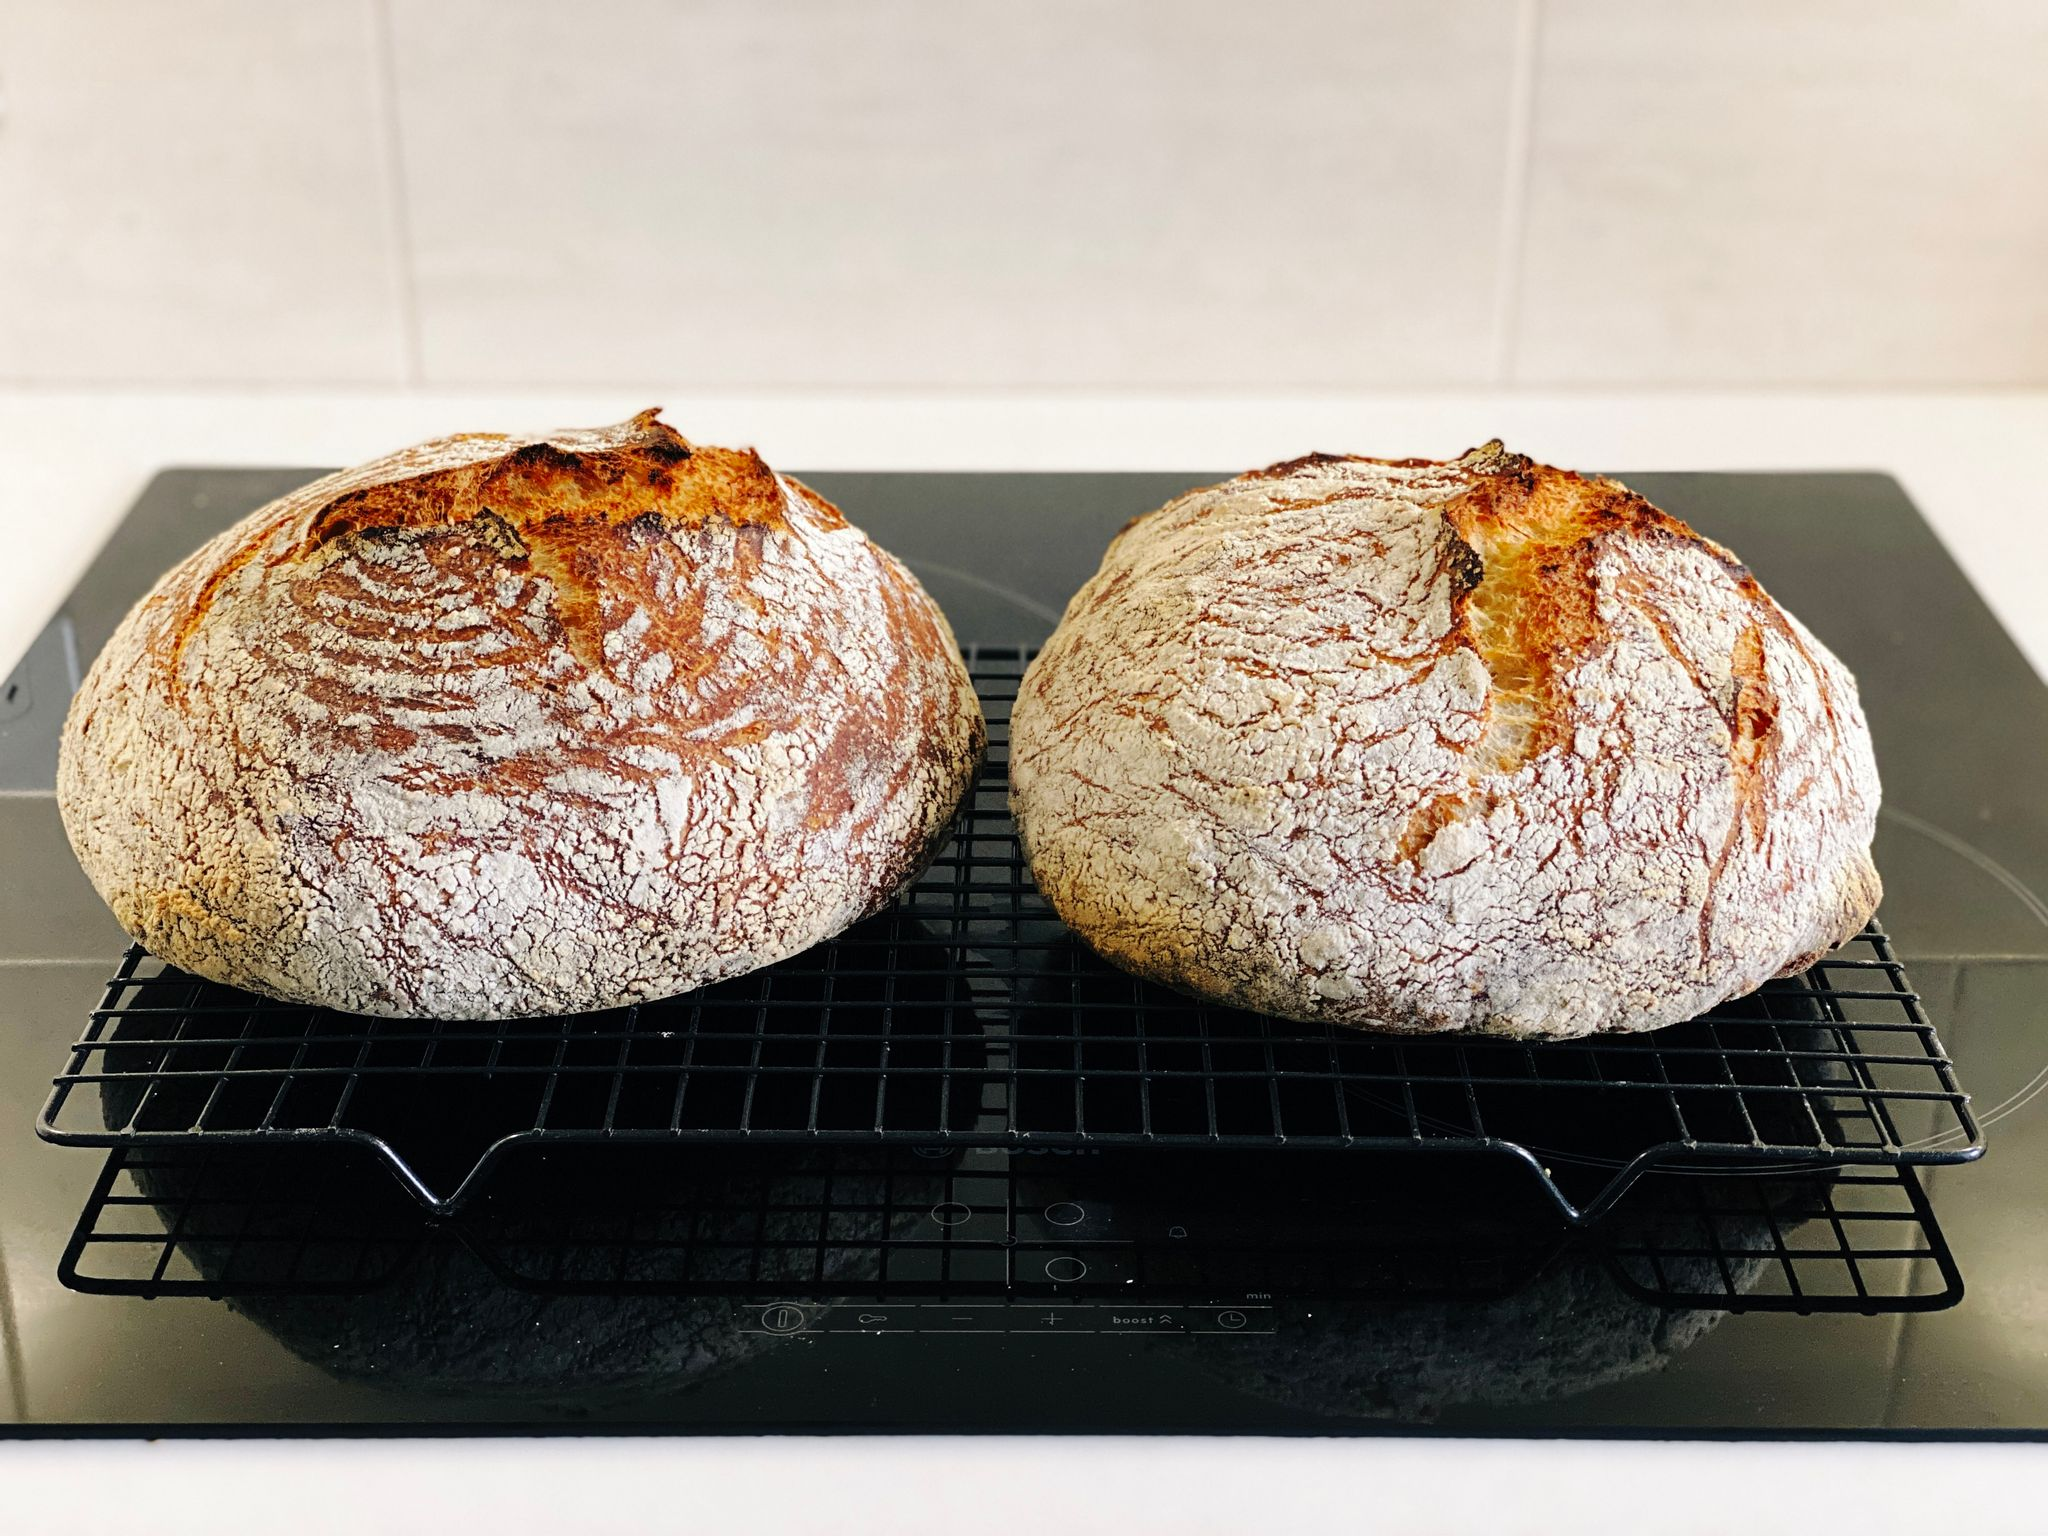 A photo of two round brown loaves of bread sitting on a cooling rack. They have some very nice splitting happening along the tops.